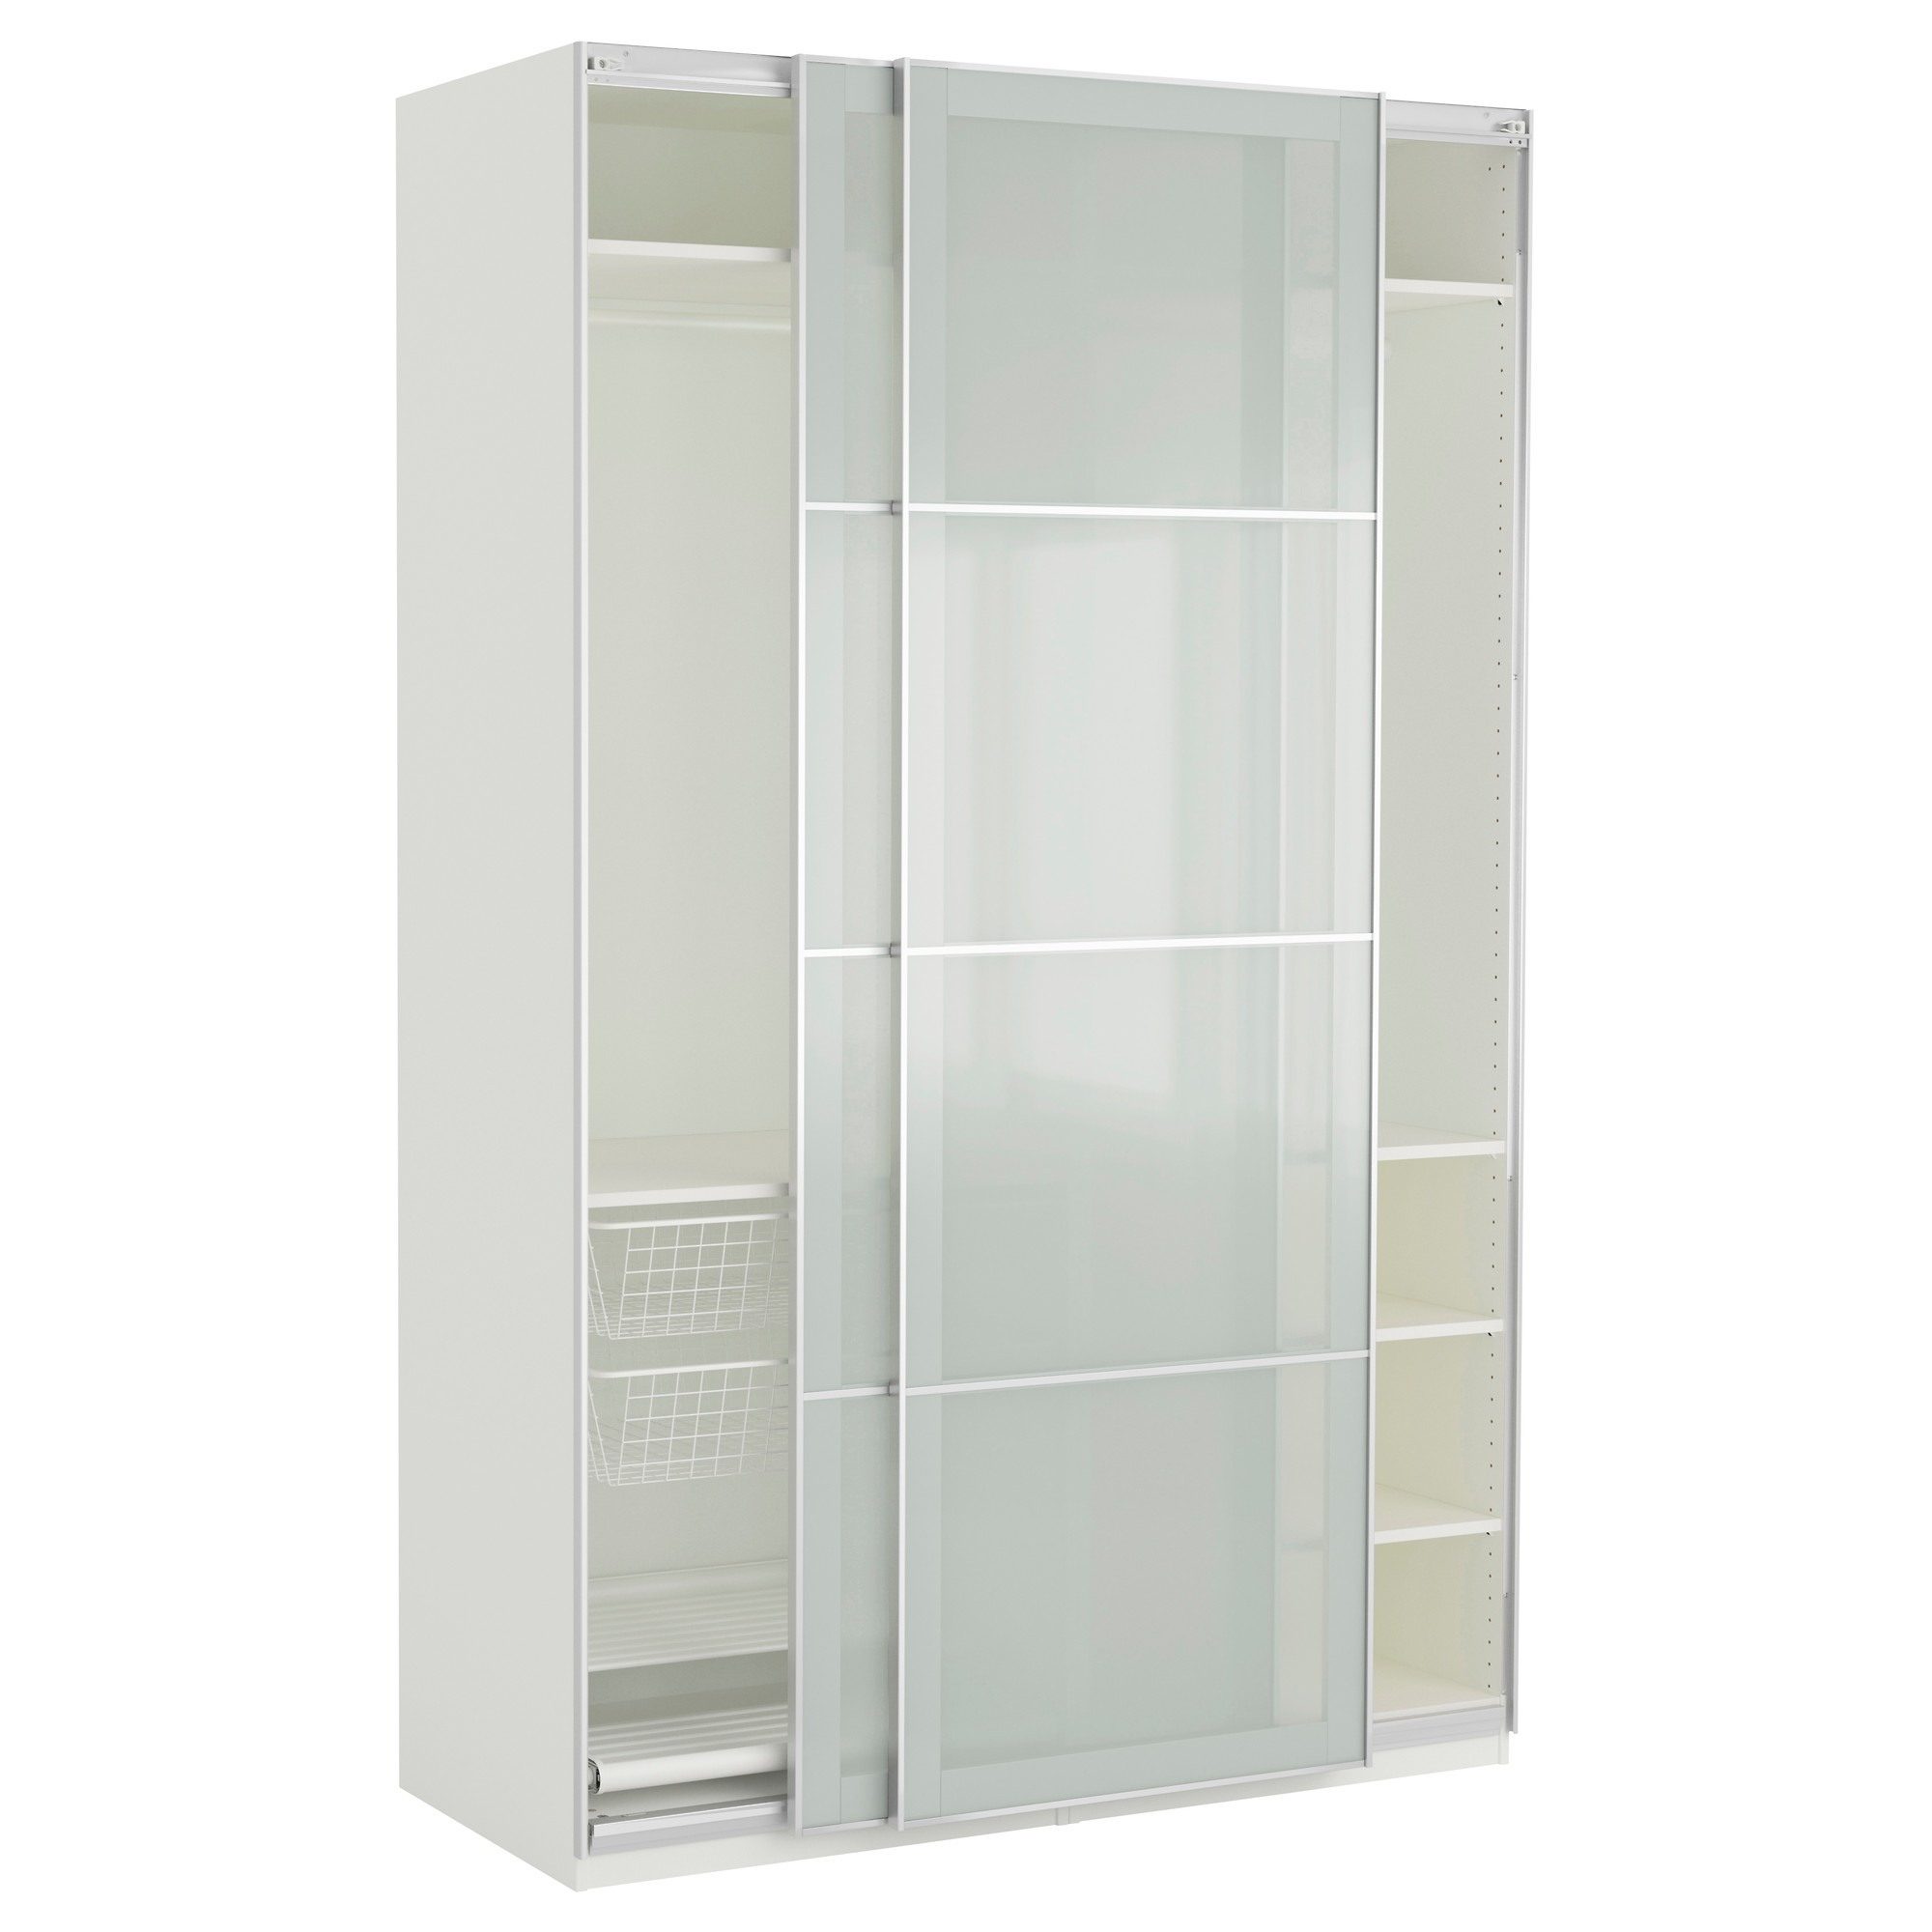 armoire porte coulissante ikea elegant armoire chambre blanc ikea nanterre with armoire porte. Black Bedroom Furniture Sets. Home Design Ideas